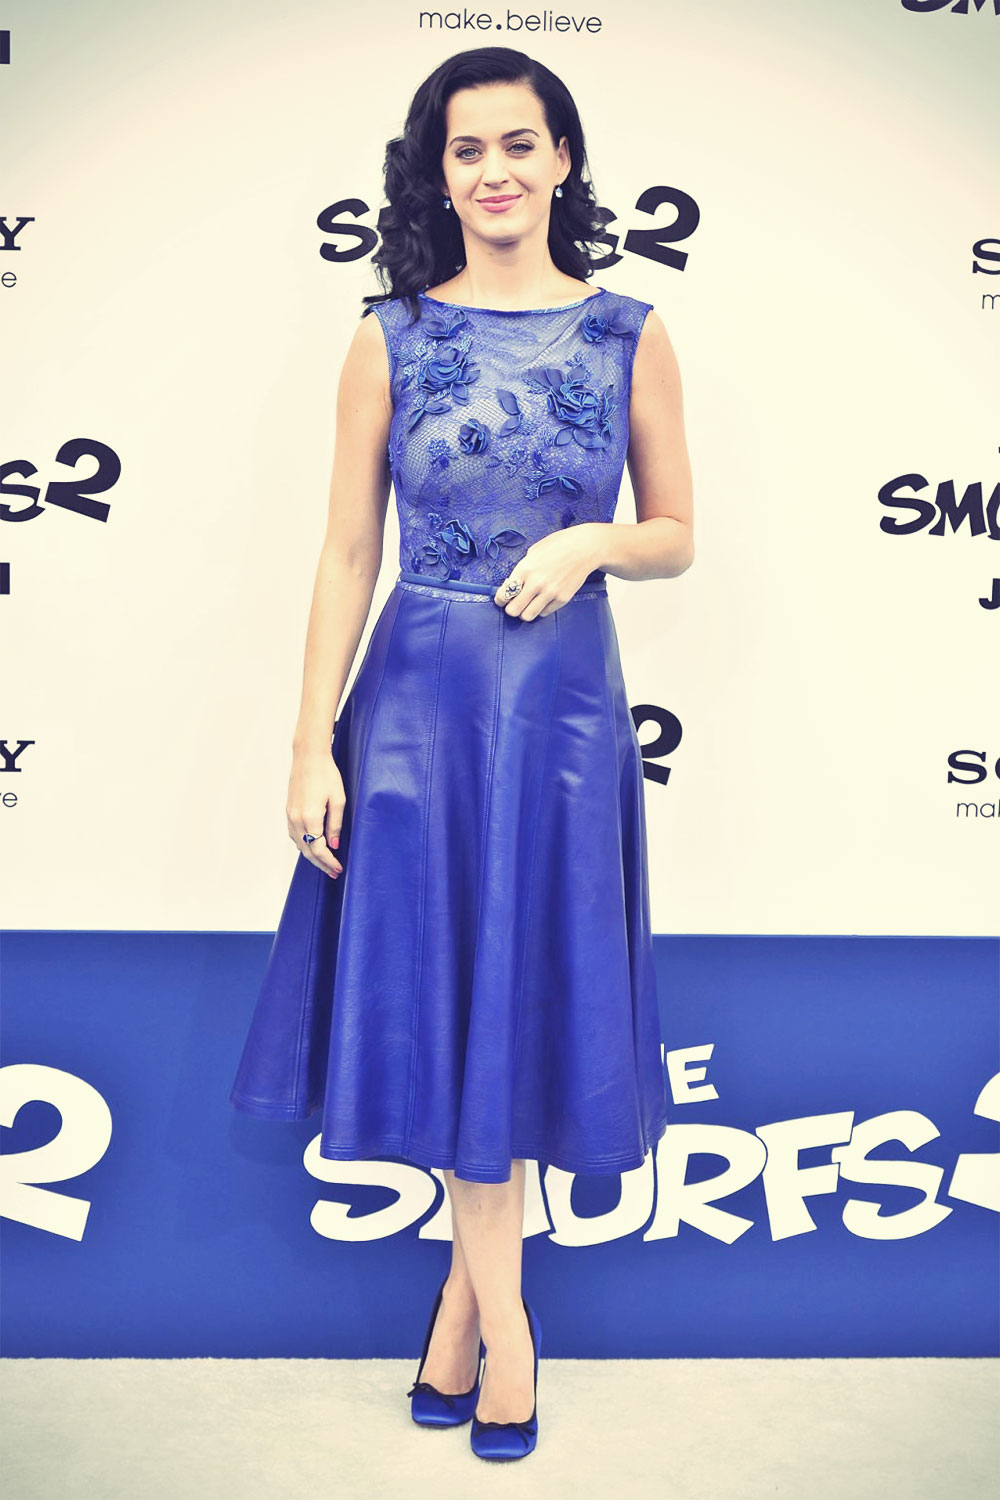 Katy Perry attends The Smurfs 2 Hollywood Premiere